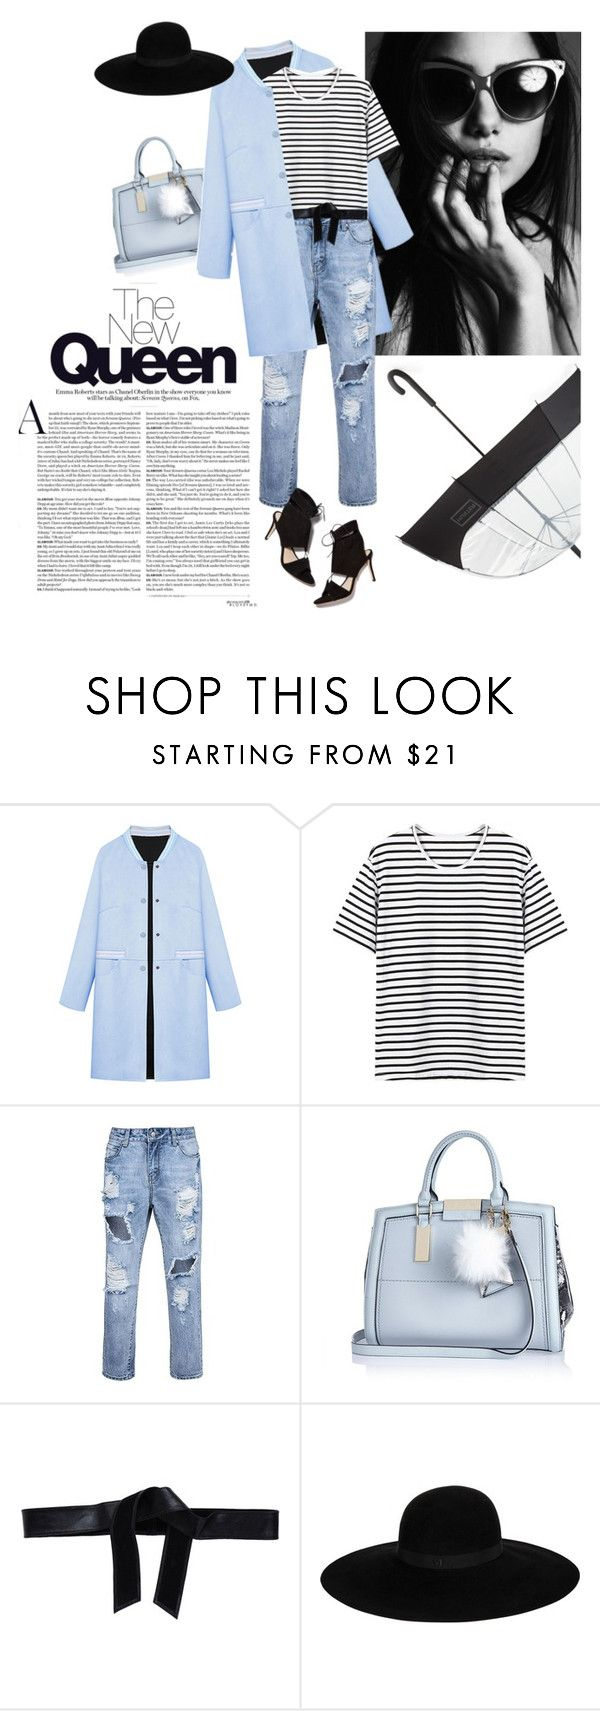 """Rainy Dayze"" by lisalockhart ❤ liked on Polyvore featuring WithChic, River Island, RoÃ¿ Roger's, Maison Michel, Loeffler Randall and Hunter"